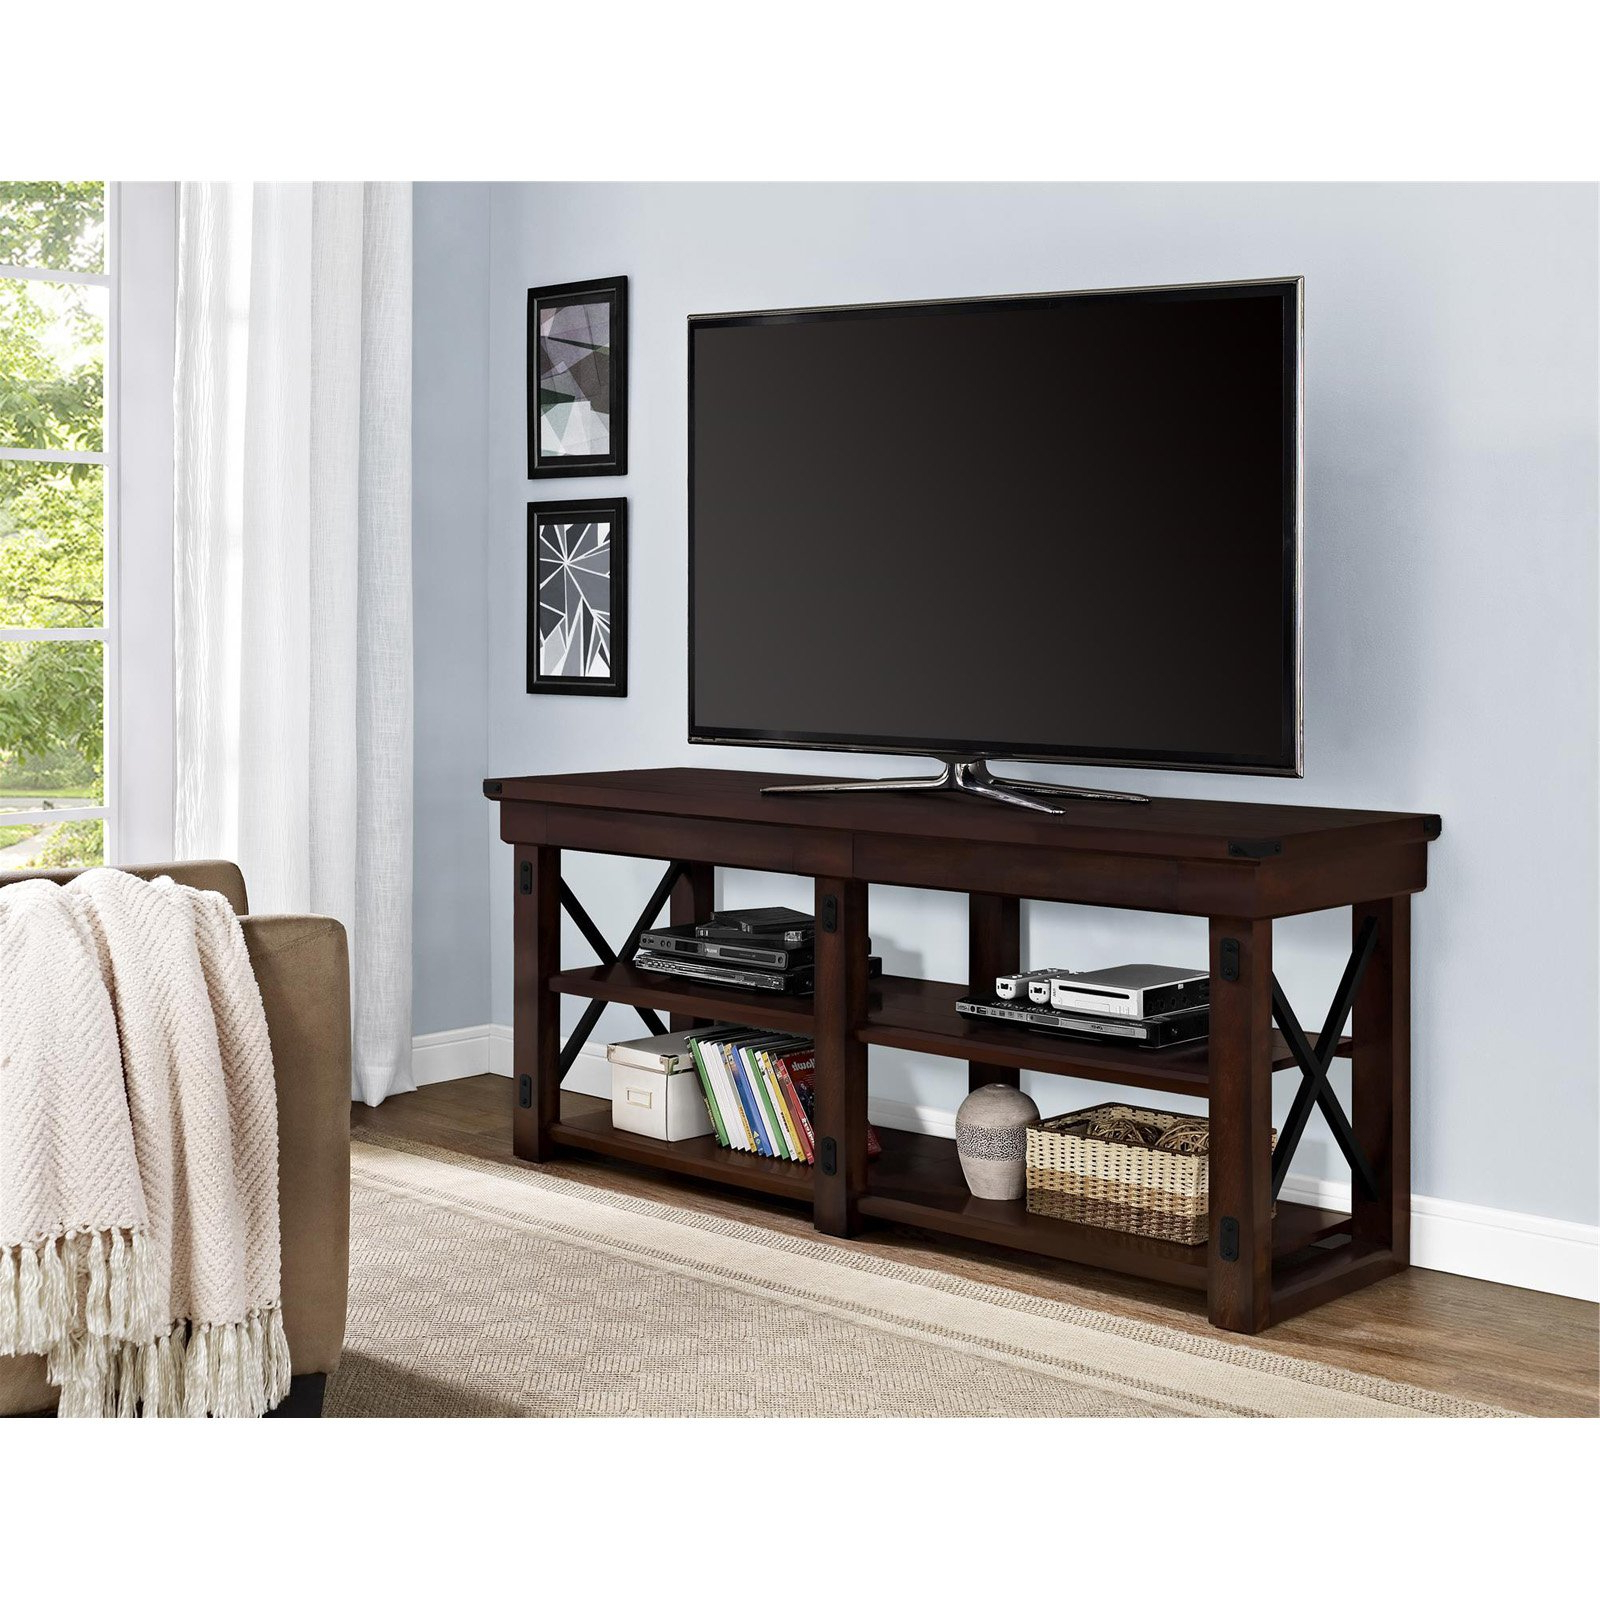 Ameriwood Home Wildwood Tv Stand For Tvs Up To 65 With Mainstays Tv Stands For Tvs With Multiple Colors (View 6 of 20)